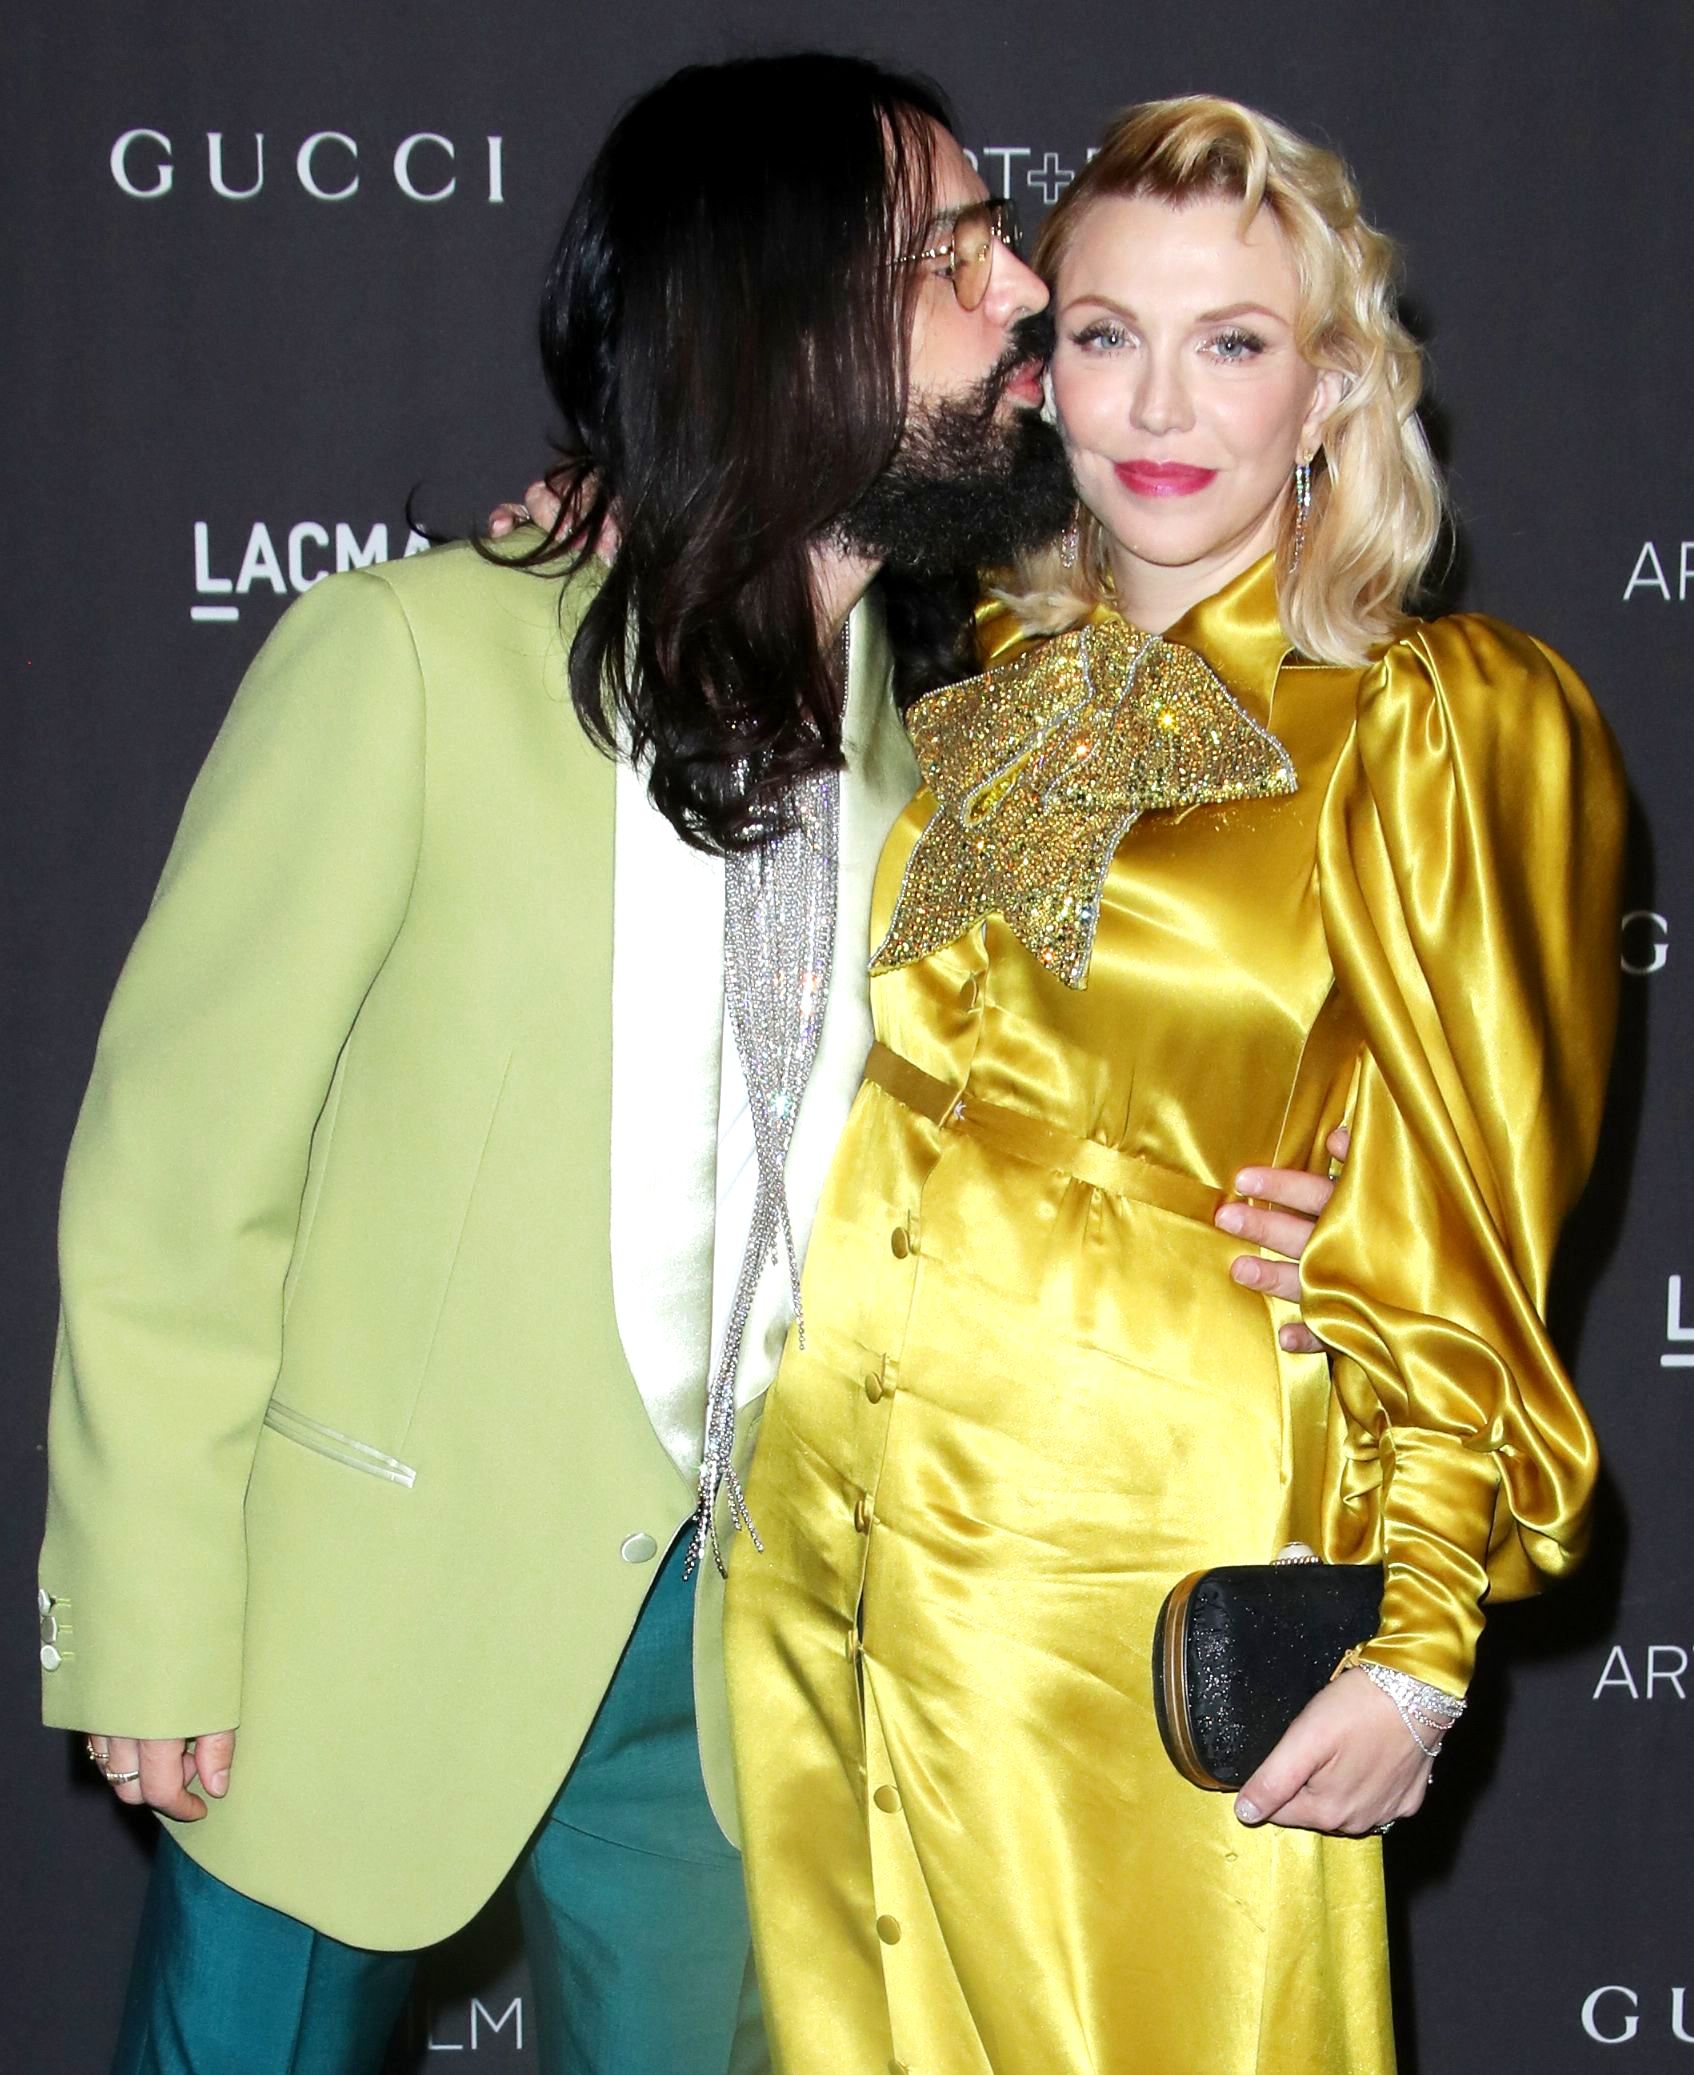 Alessandro Michele and Courtney LoveLACMA: Art and Film Gala, Los Angeles, USA - 03 Nov 2018